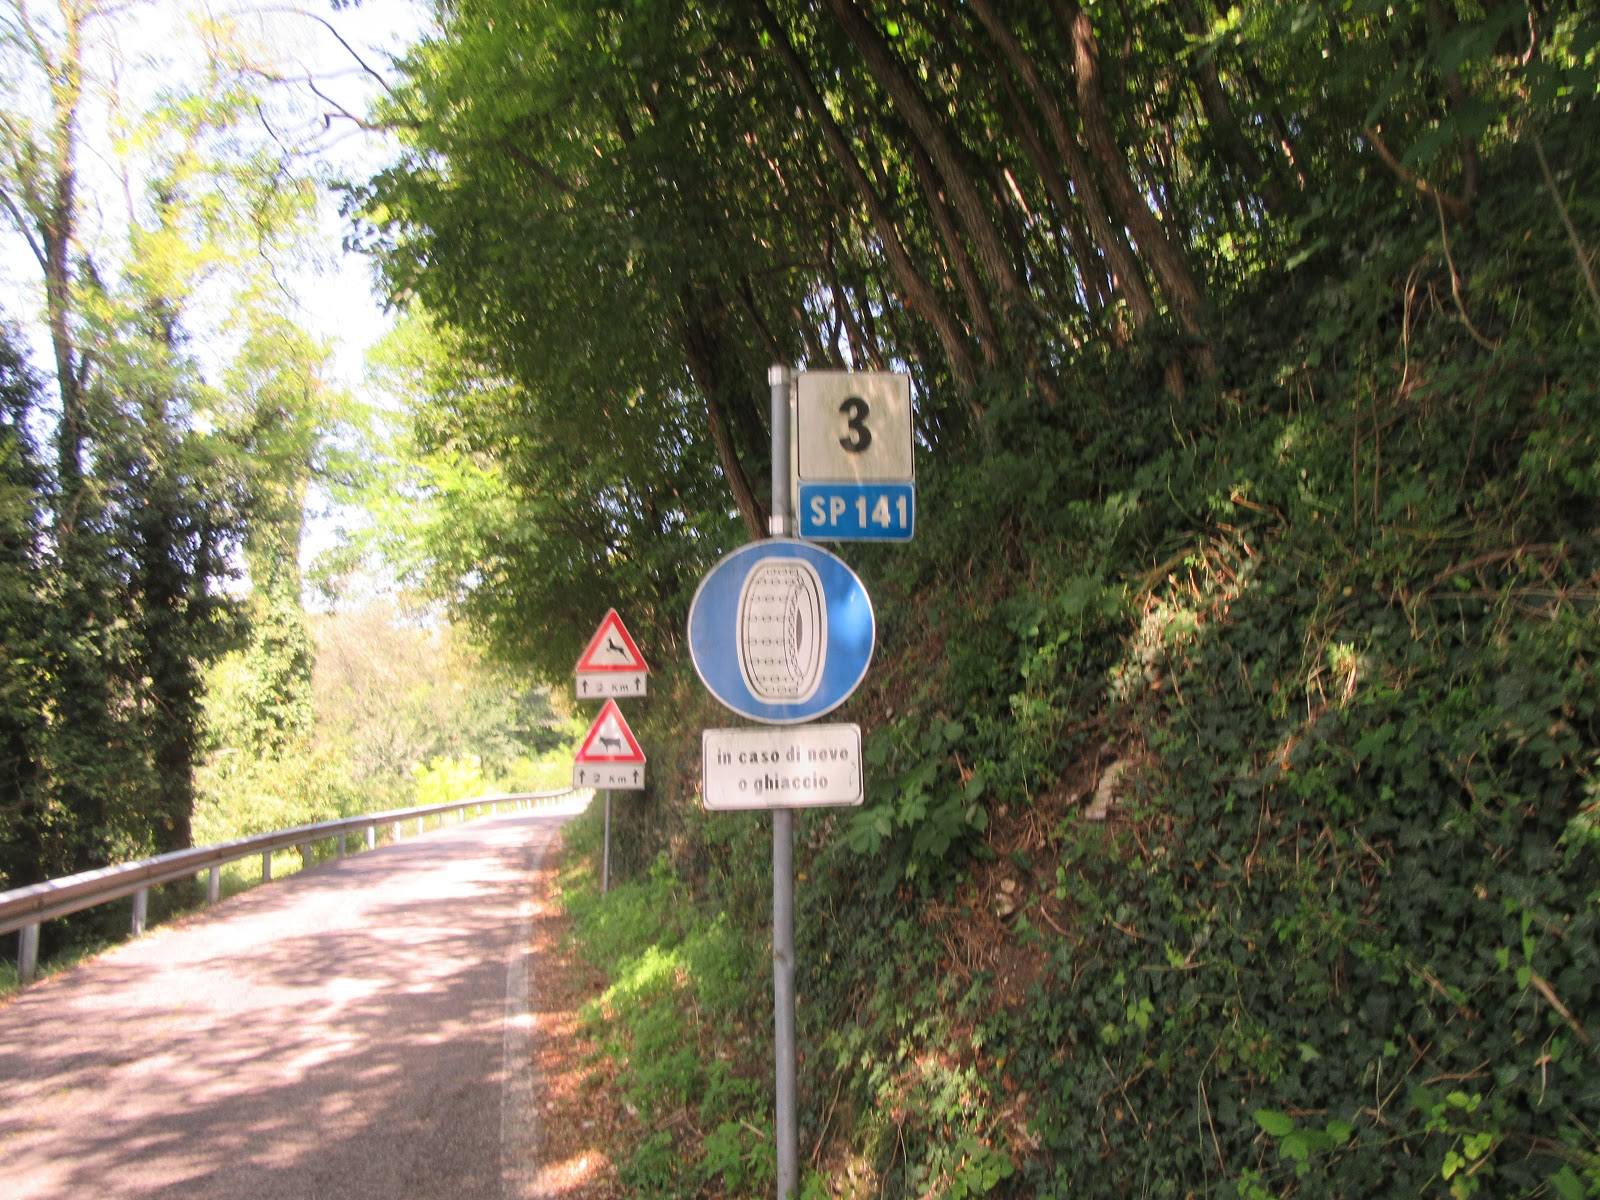 Biking Monte Grappa from Possagno - SP 141 sign and roadway